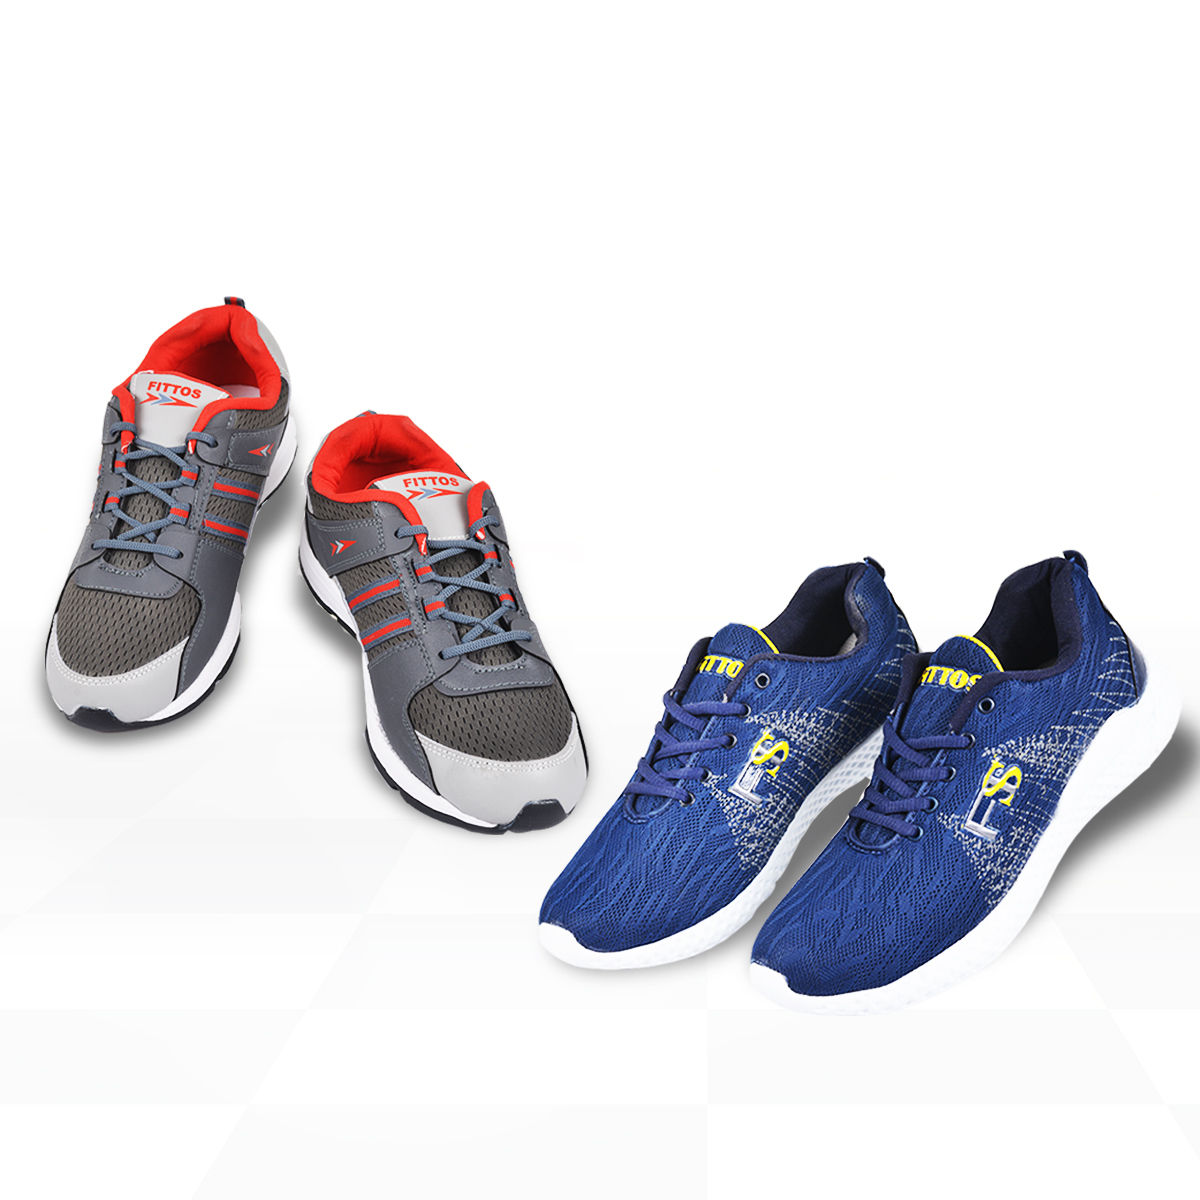 Fittos Sports Shoes - Pick Any 1 (CS2